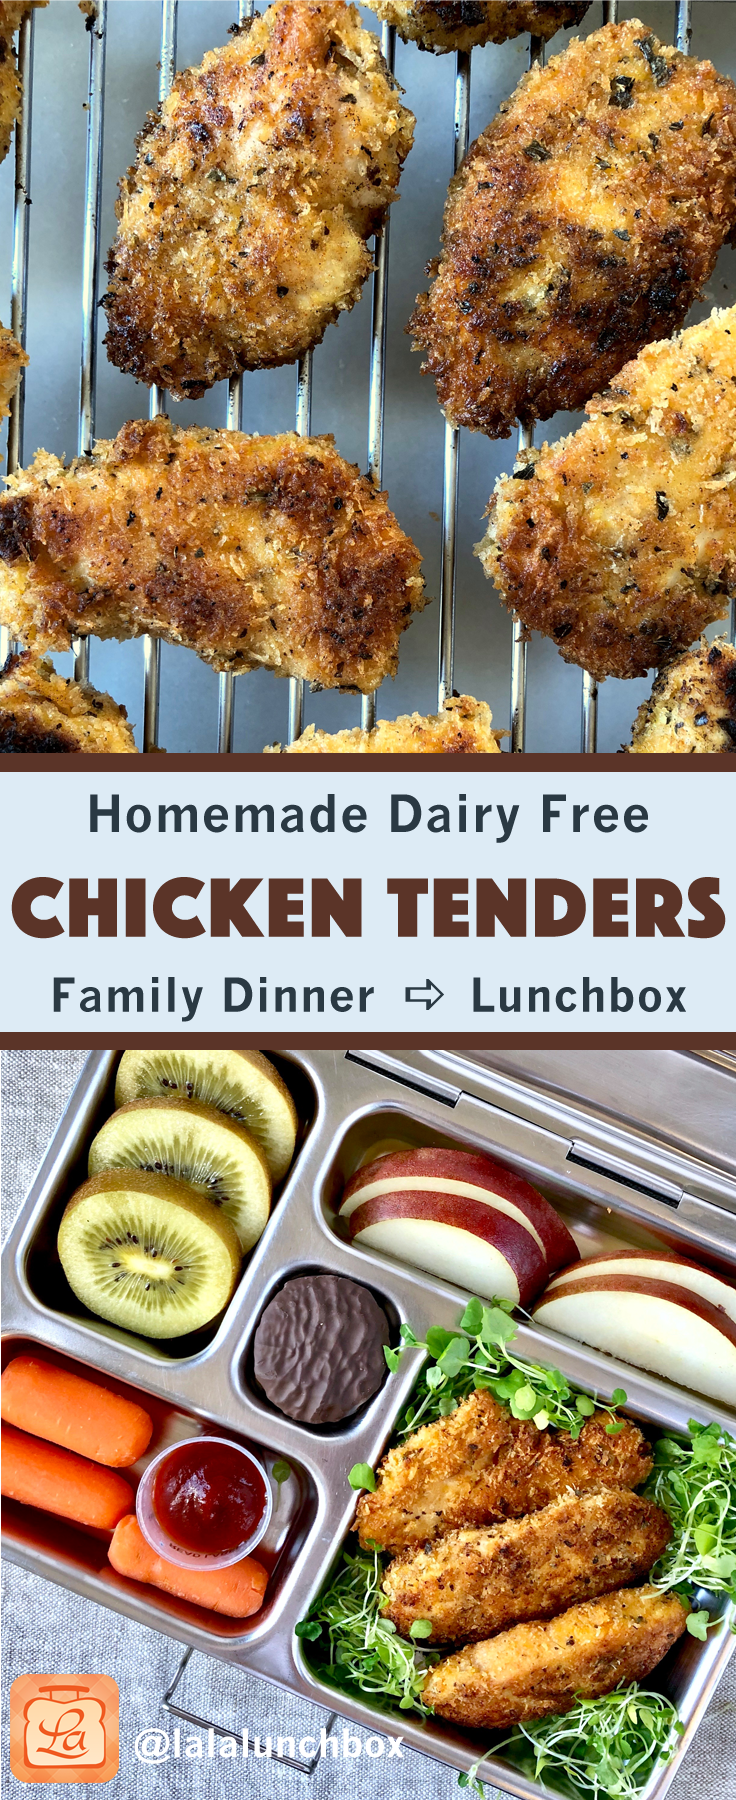 Pin it for later! Easy homemade dairy free chicken tenders.